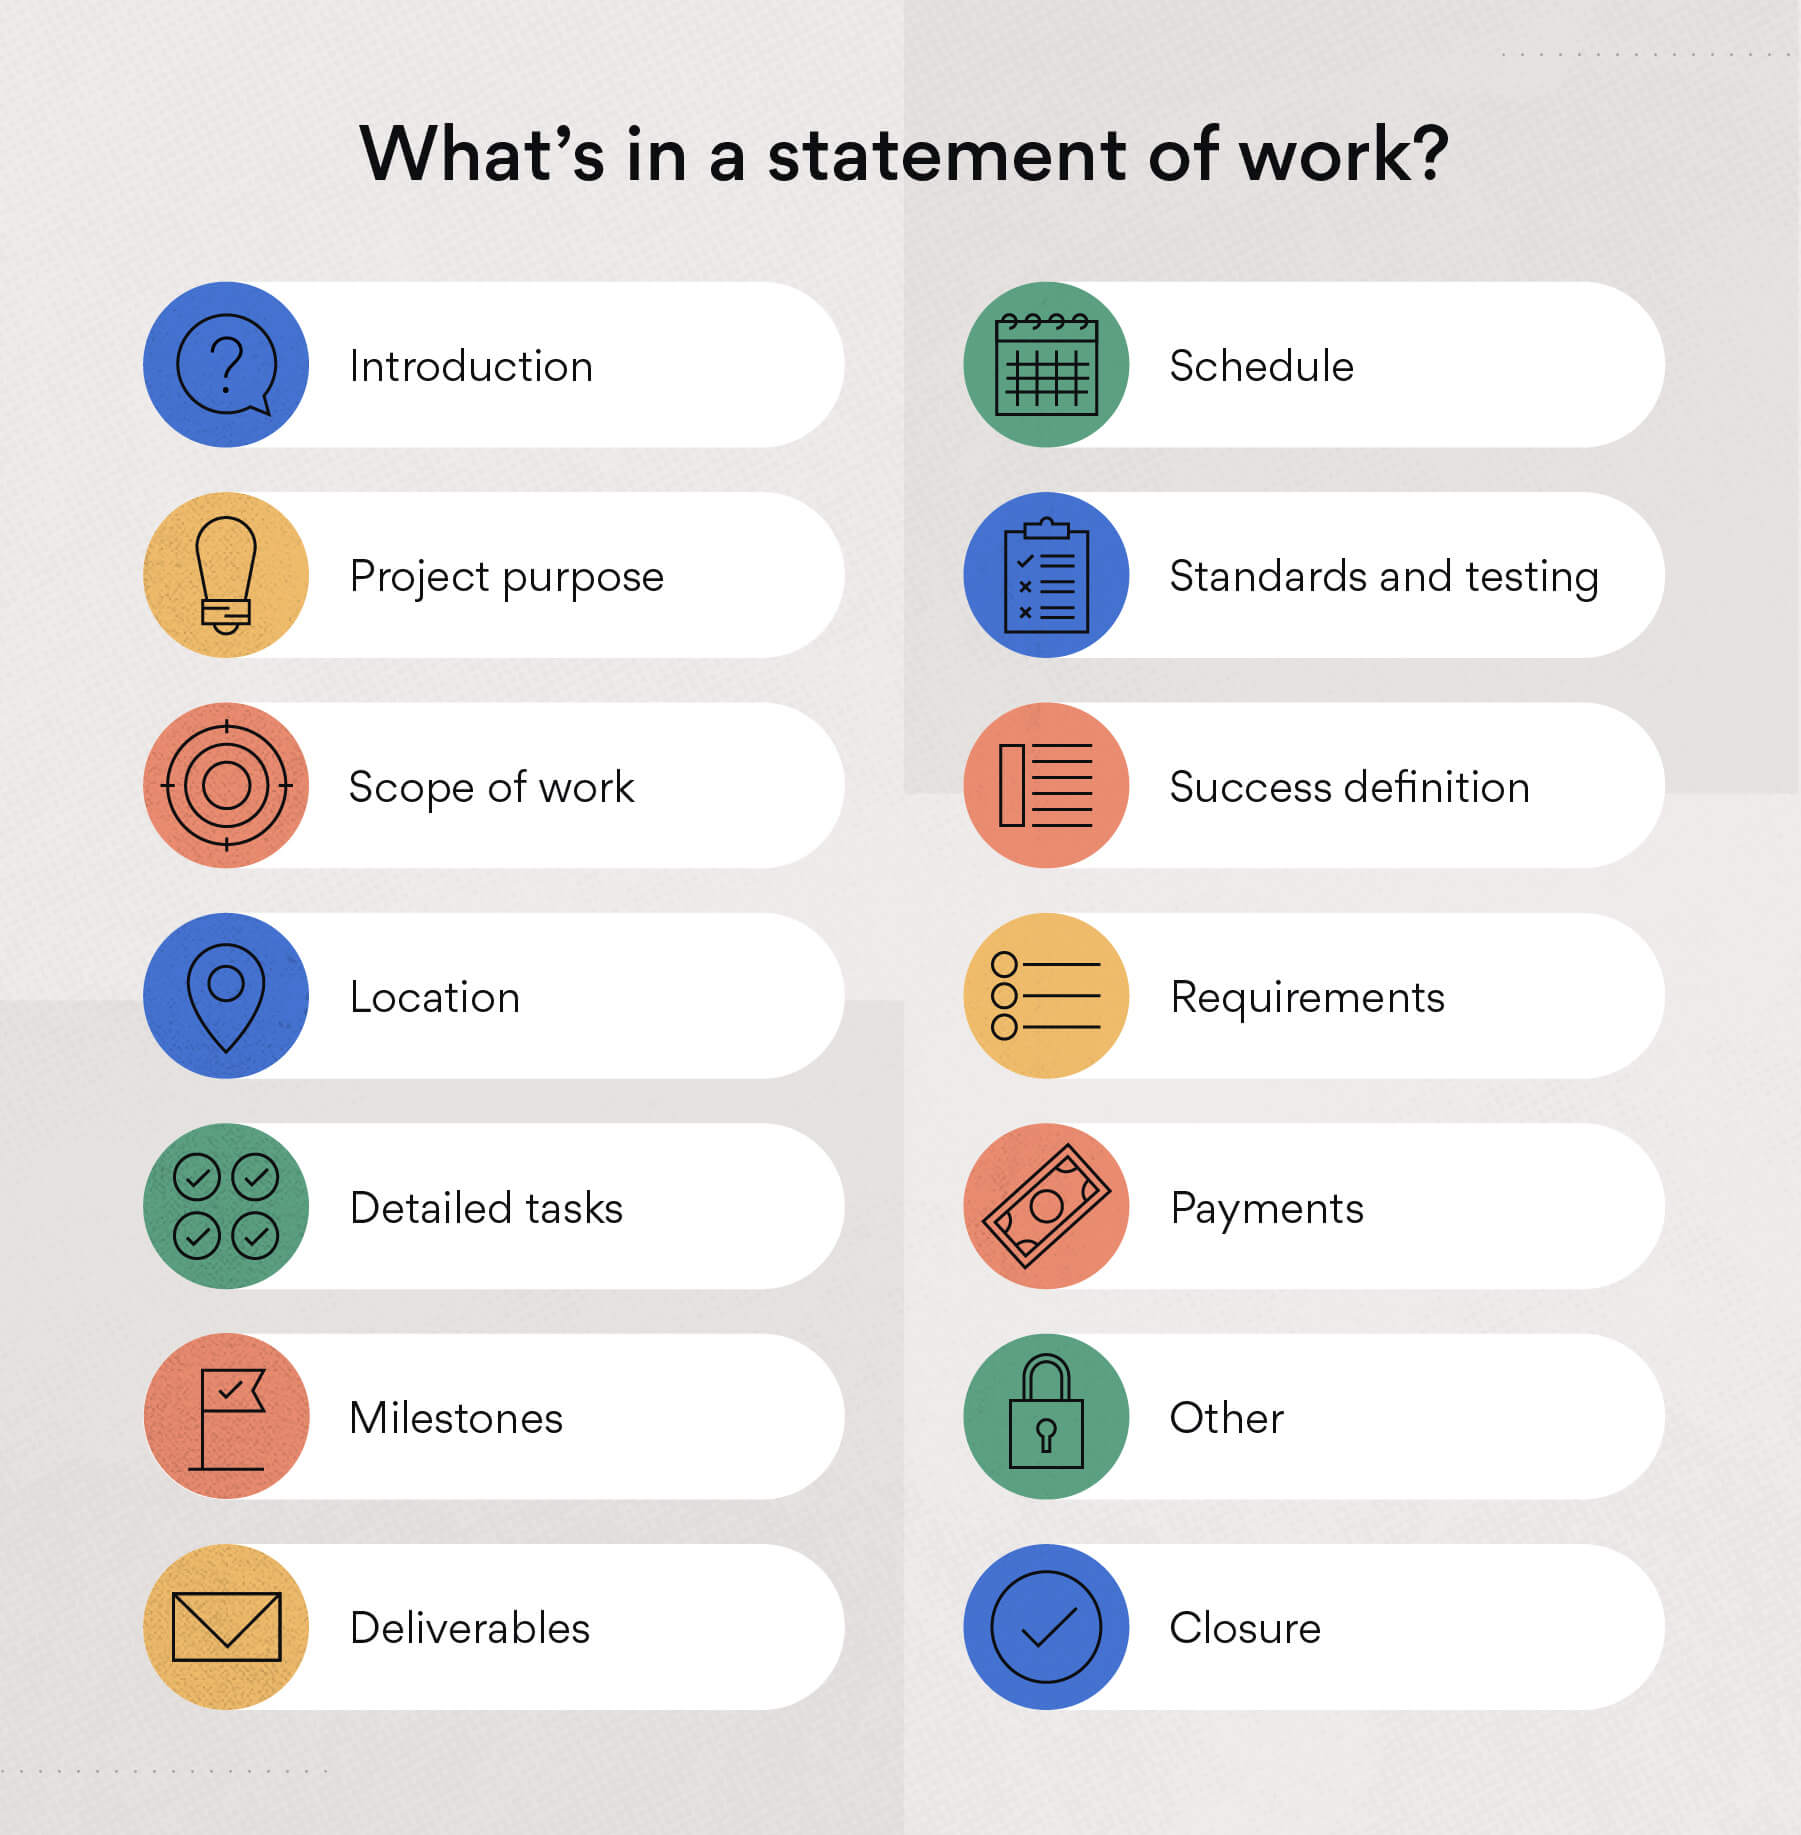 What's in a statement of work?